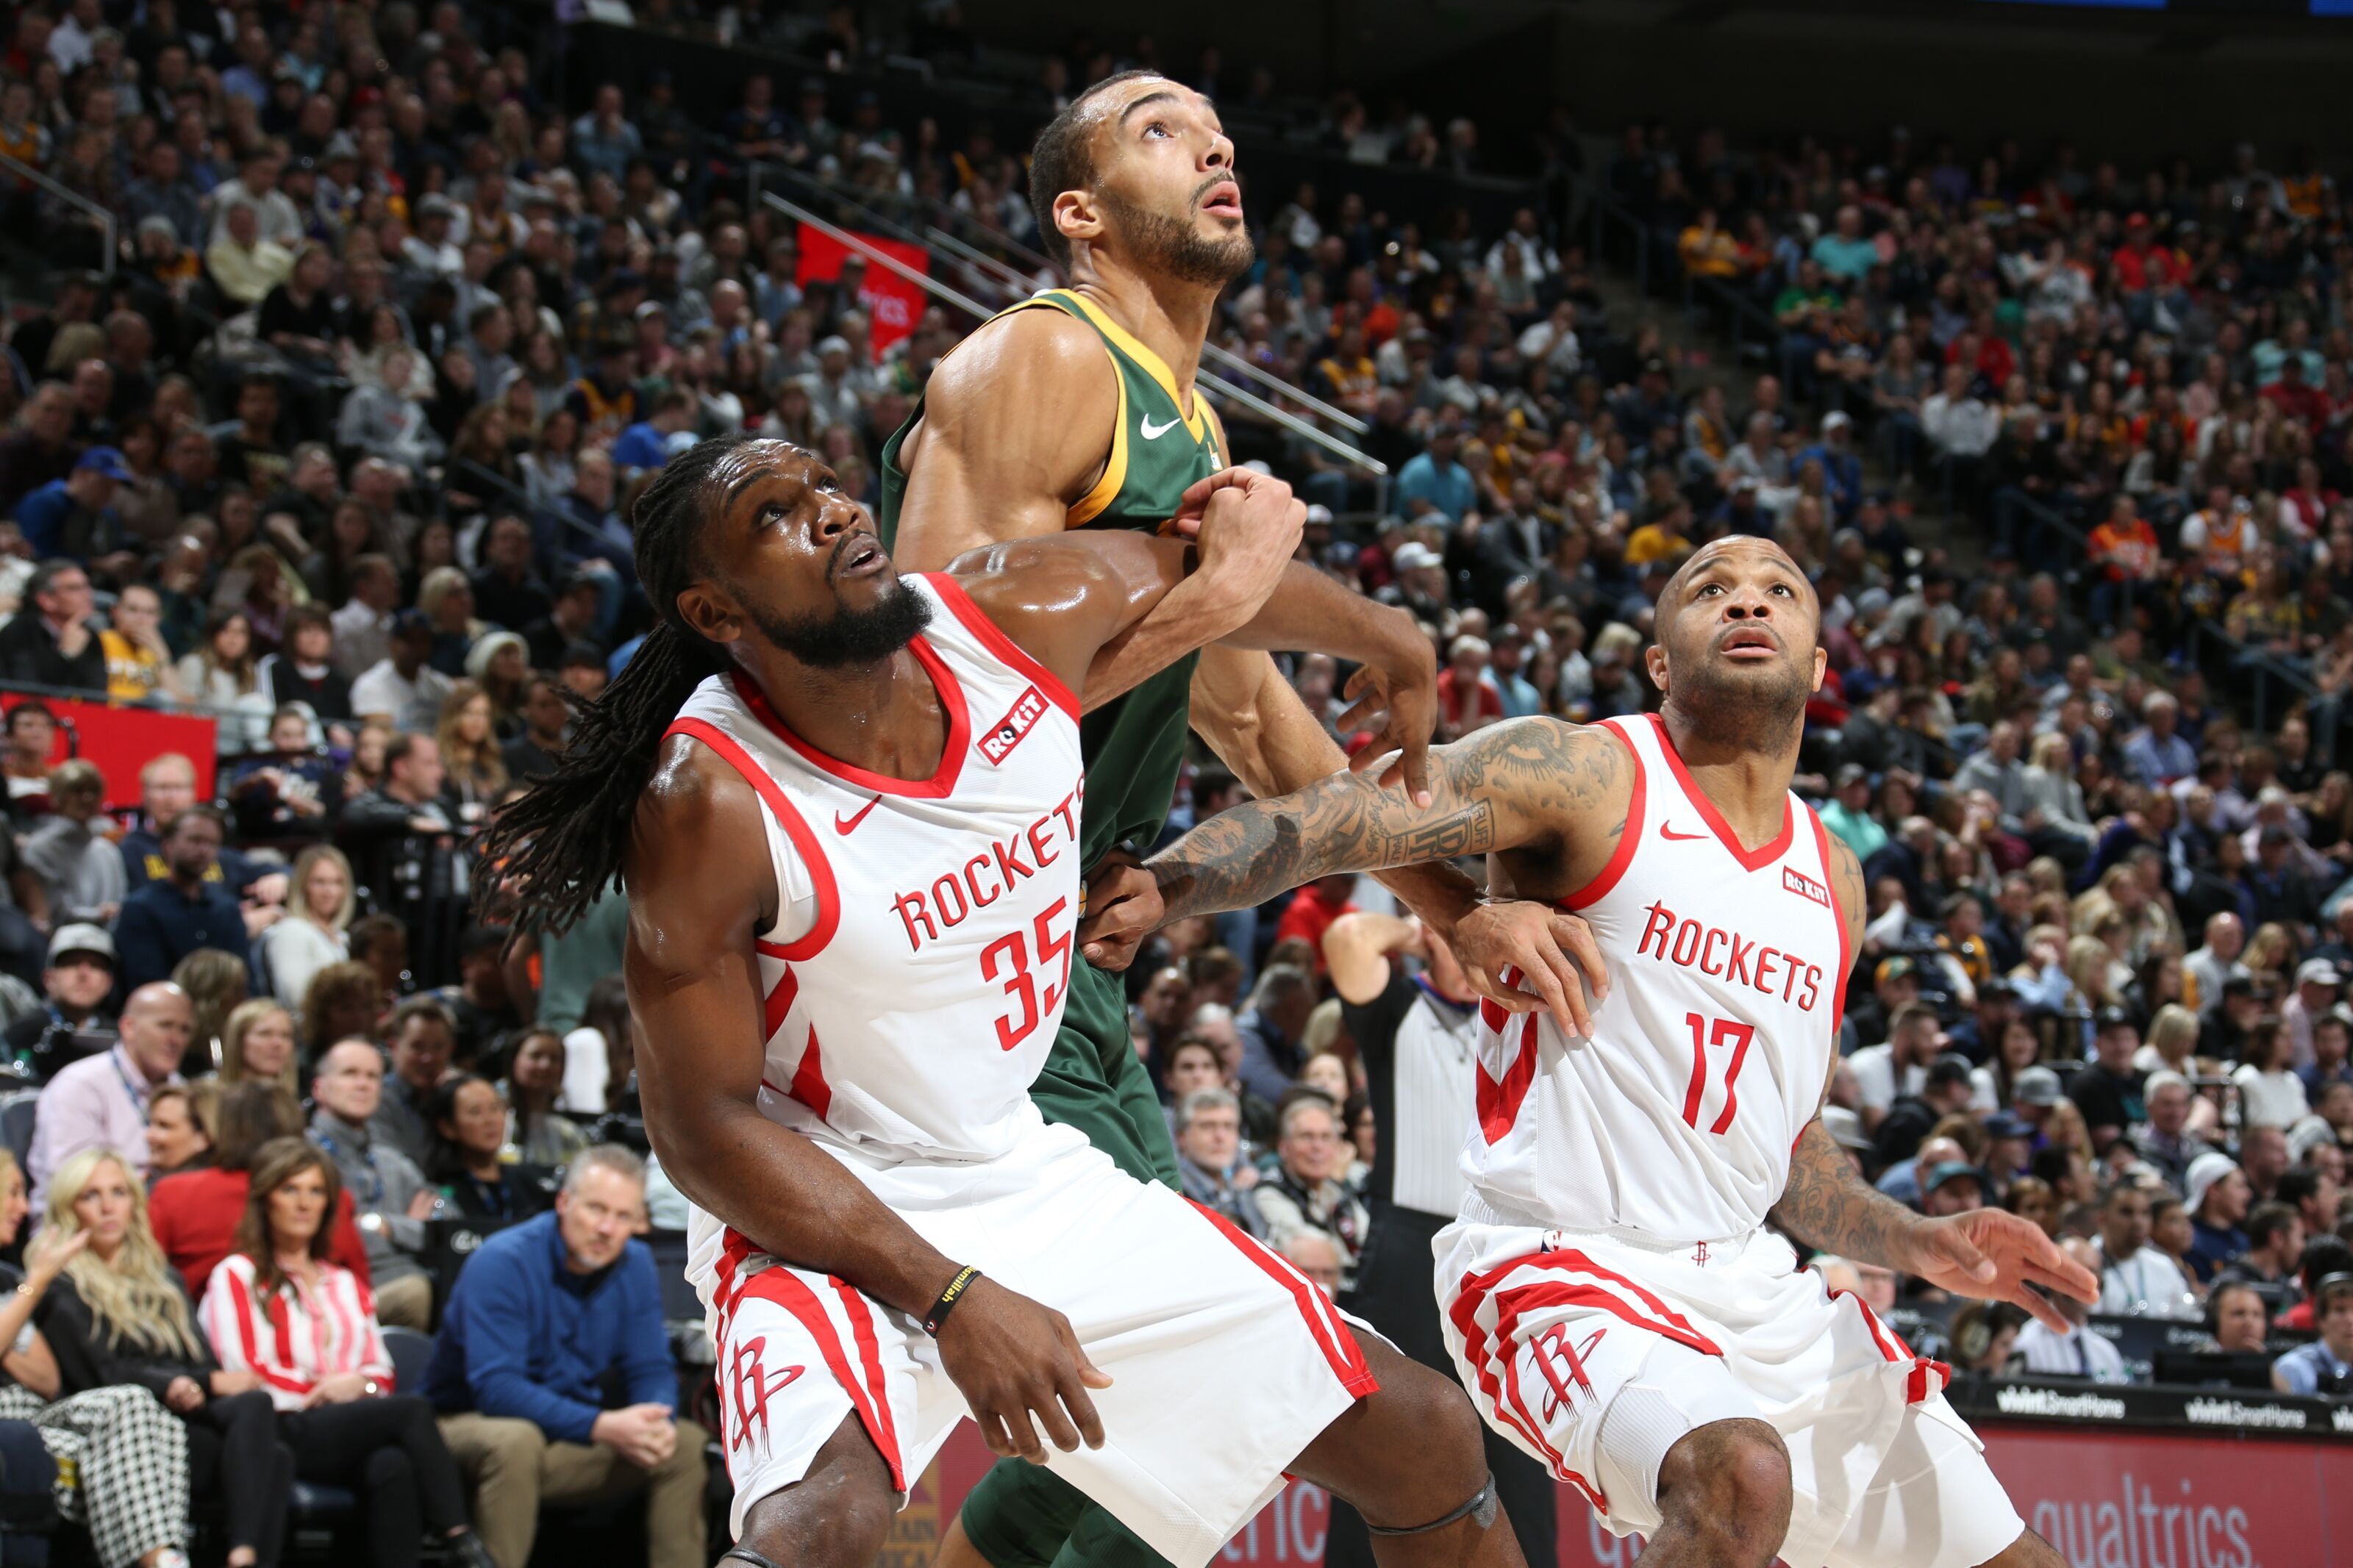 SALT LAKE CITY, UT - FEBRUARY 2: Kenneth Faried #35 of the Houston Rockets, Rudy Gobert #27 of the Utah Jazz, and PJ Tucker #17 of the Houston Rockets fight for position on February 2, 2019 at Vivint Smart Home Arena in Salt Lake City, Utah. NOTE TO USER: User expressly acknowledges and agrees that, by downloading and or using this Photograph, User is consenting to the terms and conditions of the Getty Images License Agreement. Mandatory Copyright Notice: Copyright 2019 NBAE (Photo by Melissa Majchrzak/NBAE via Getty Images)